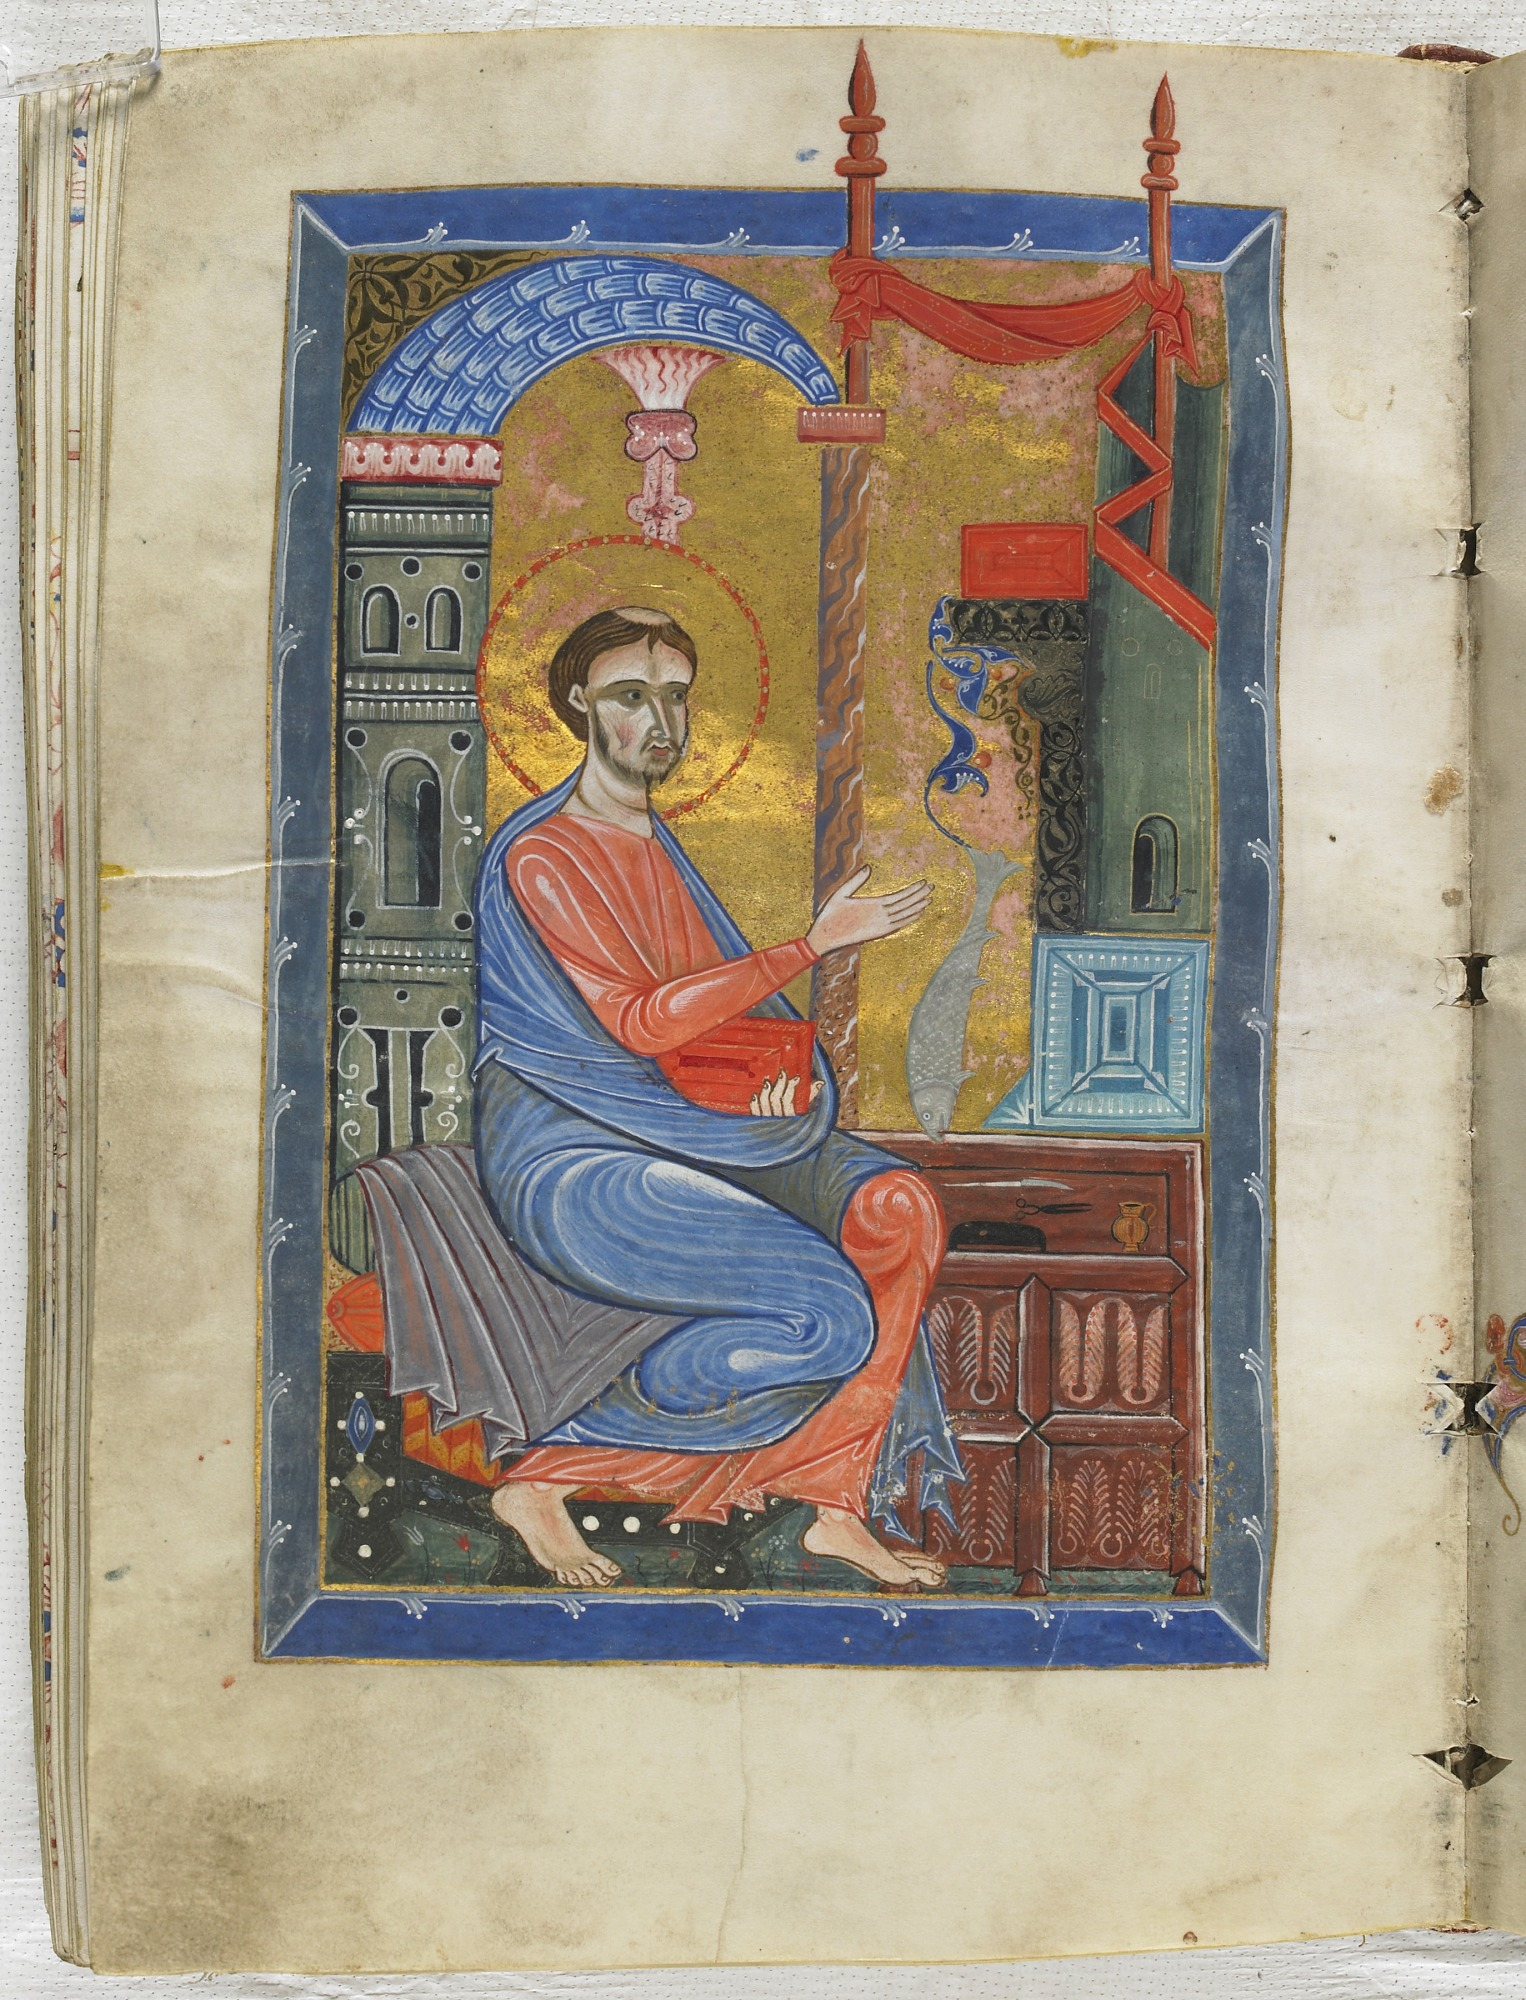 folio 310: The Gospel according to the Four Evangelists